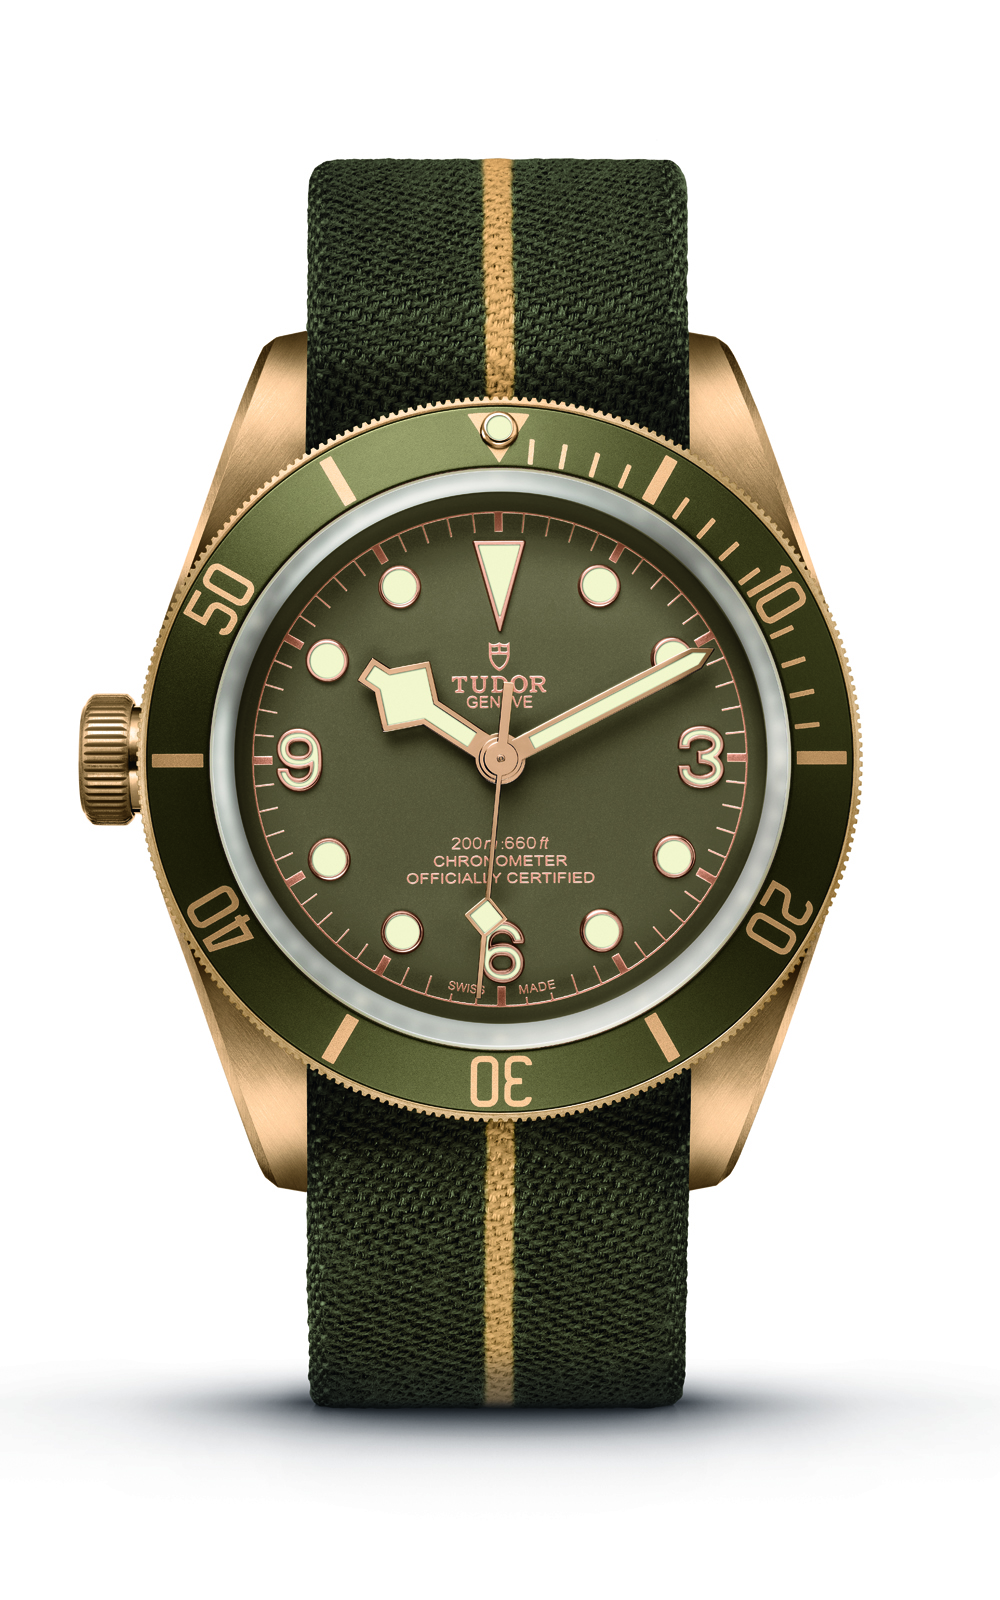 From the brand that can do no wrong at the moment. If the version of this watch donated to Only Watch 2015 was any indication—it sold for 375,000 Swiss francs (more than HK$3 million), 120 times the list price—this one will generate feverish bidding. (Photo: Courtesy of Tudor)